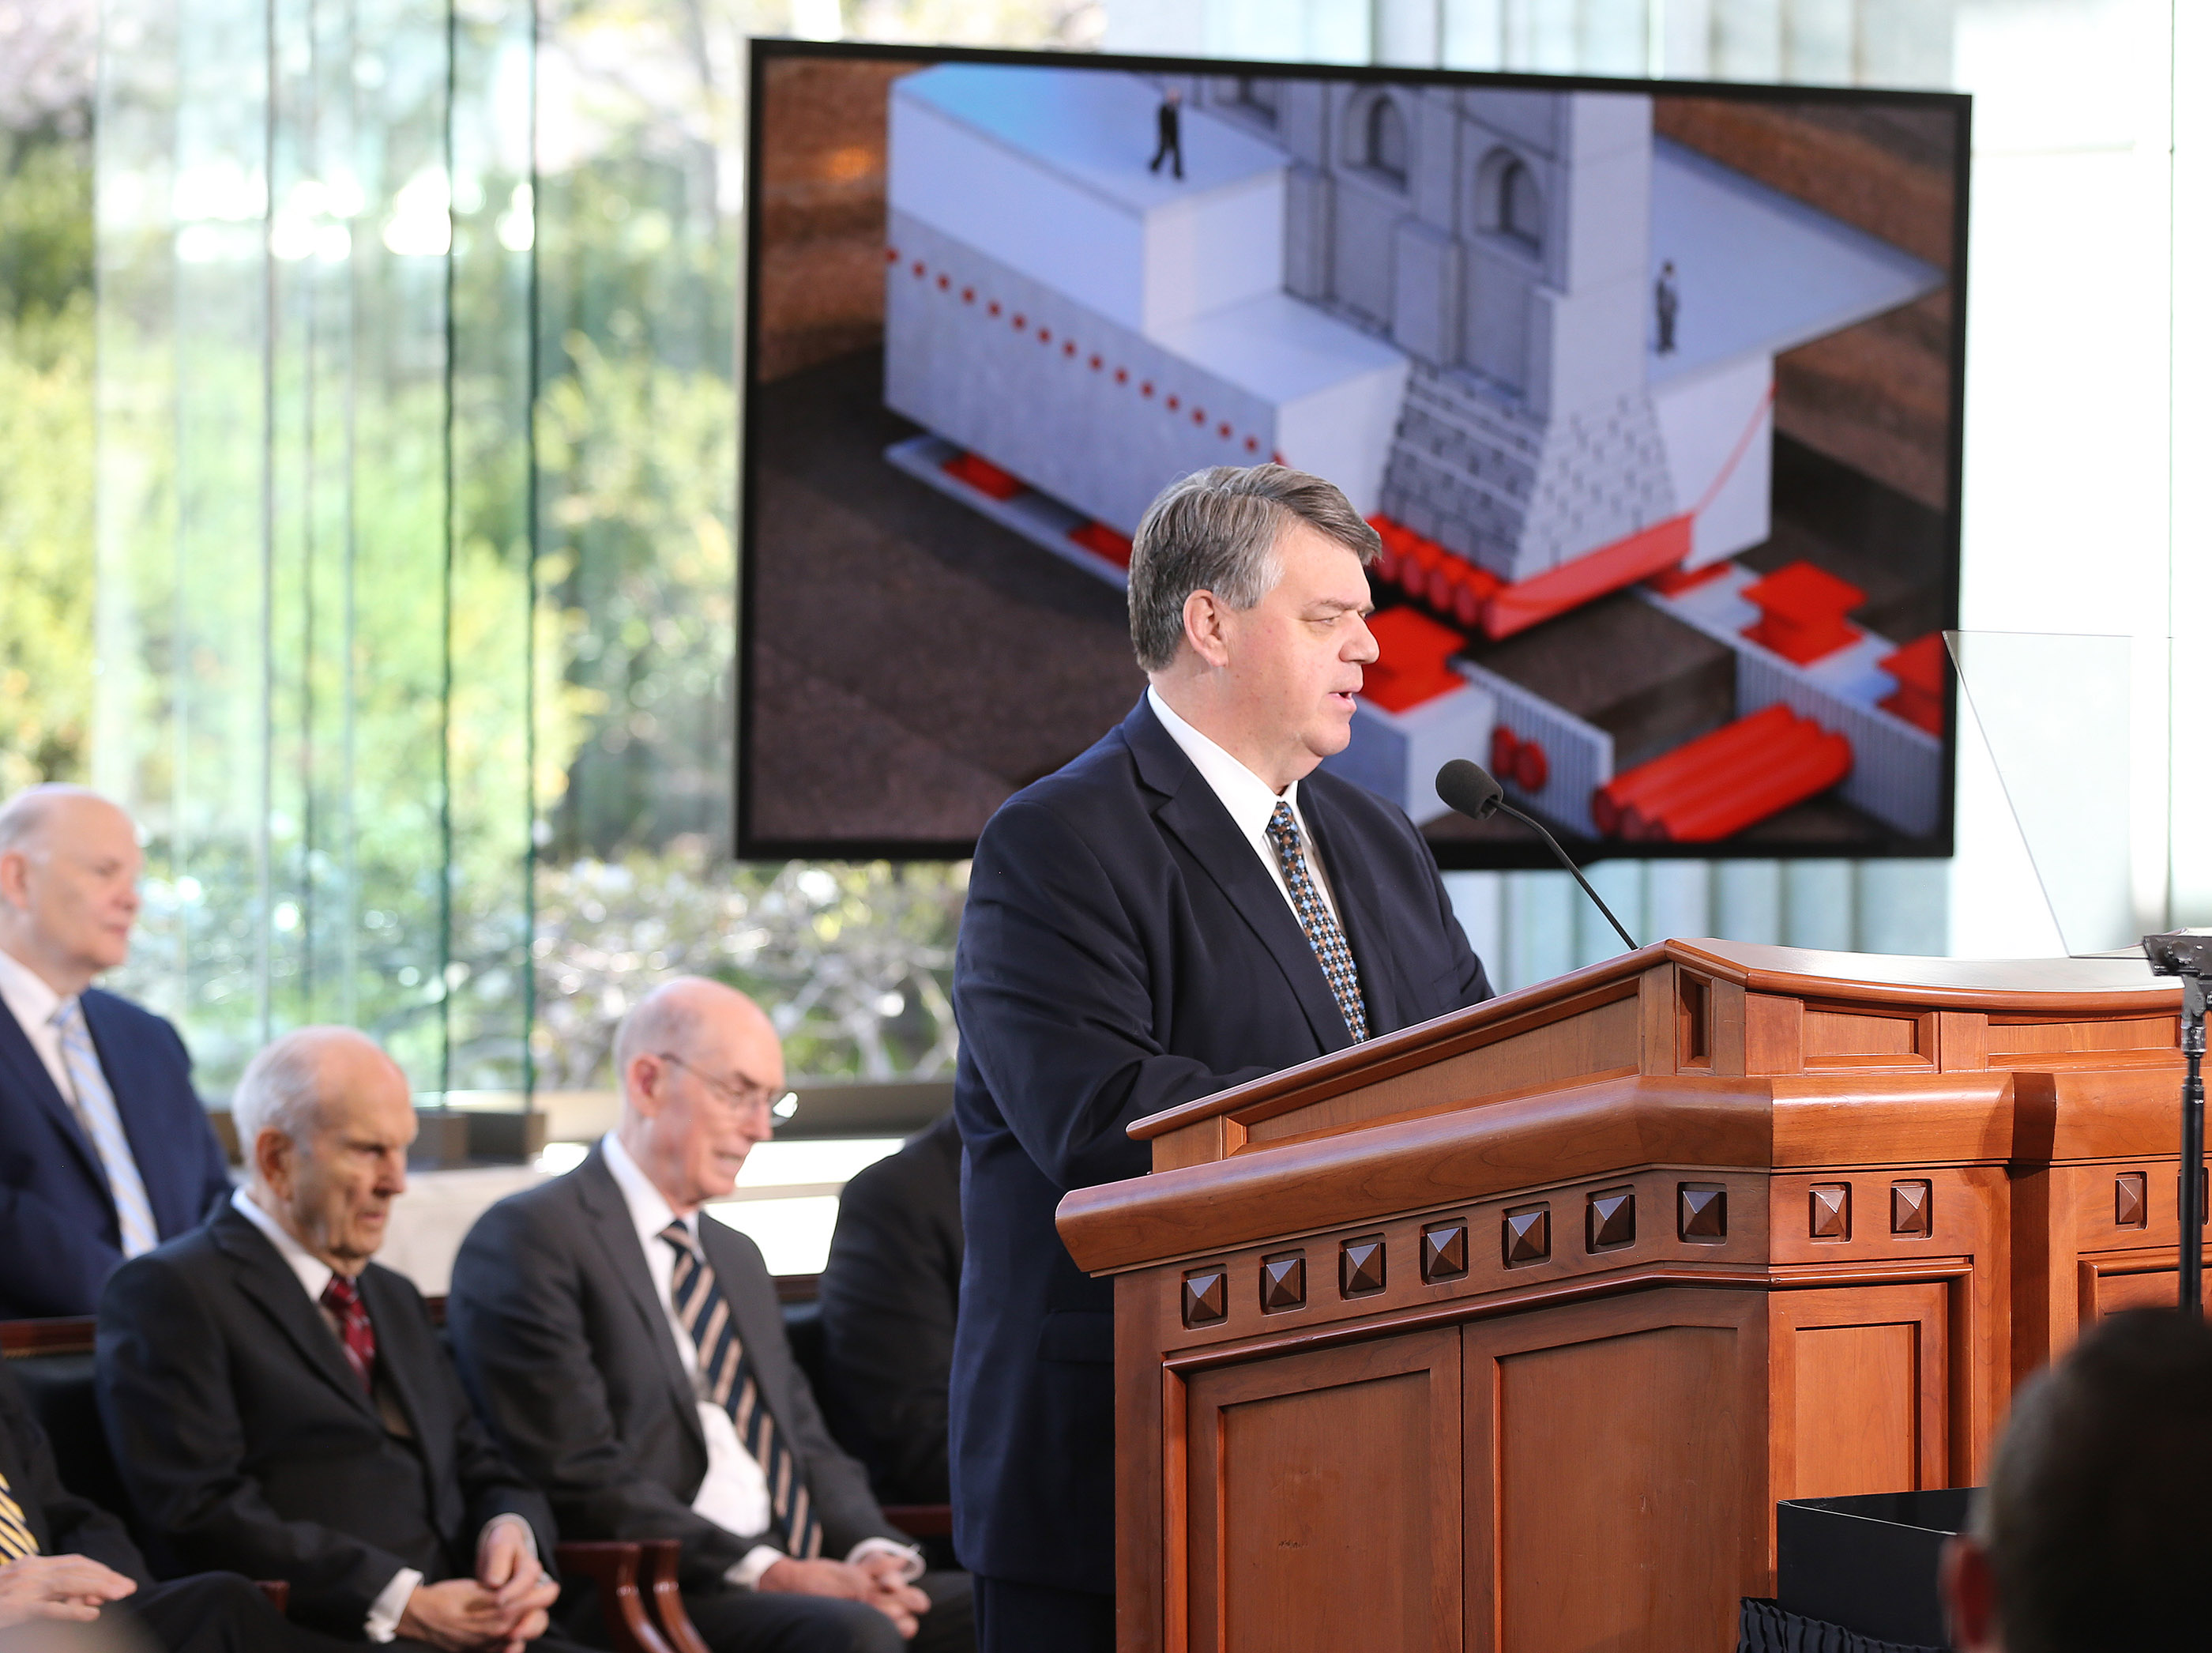 Brent Roberts, director of operations for The Church of Jesus Christ of Latter-day Saints, talks about renovation plans for the Salt Lake Temple during a press conference in Salt Lake City on Friday, April 19, 2019.